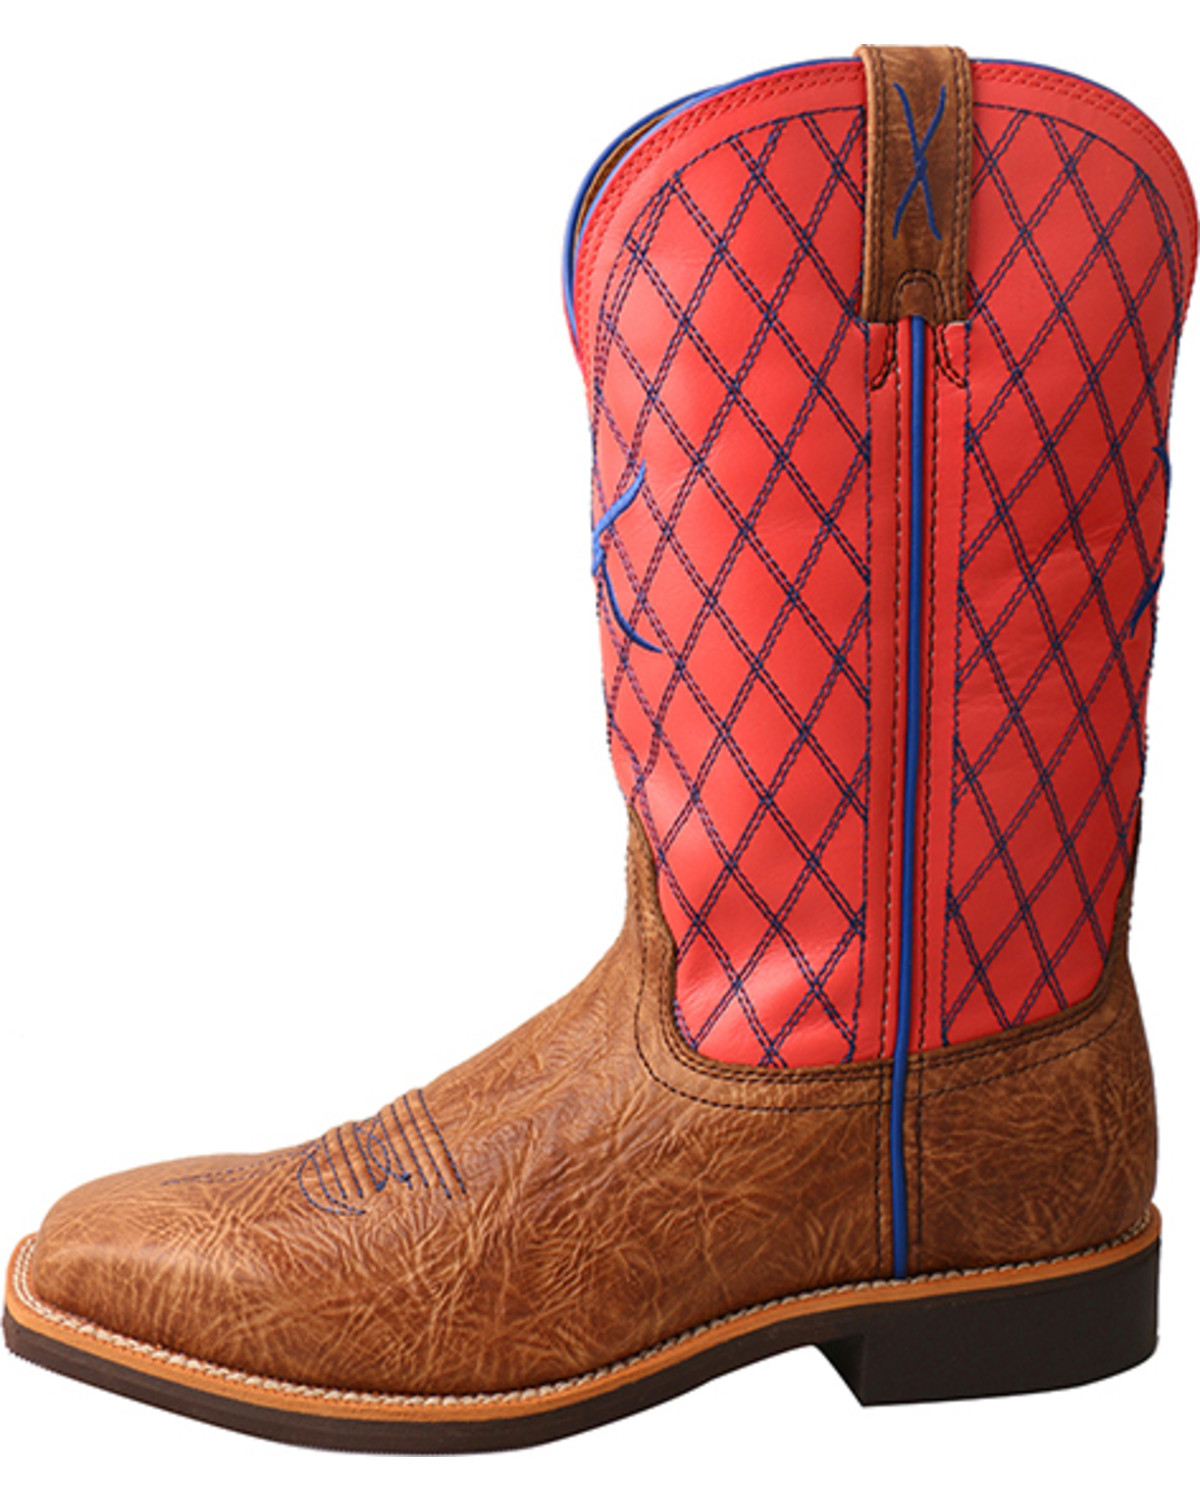 Simple Twisted X Boots Stepping Out Cowboy Boots (For Women) 9963P - Save 55%